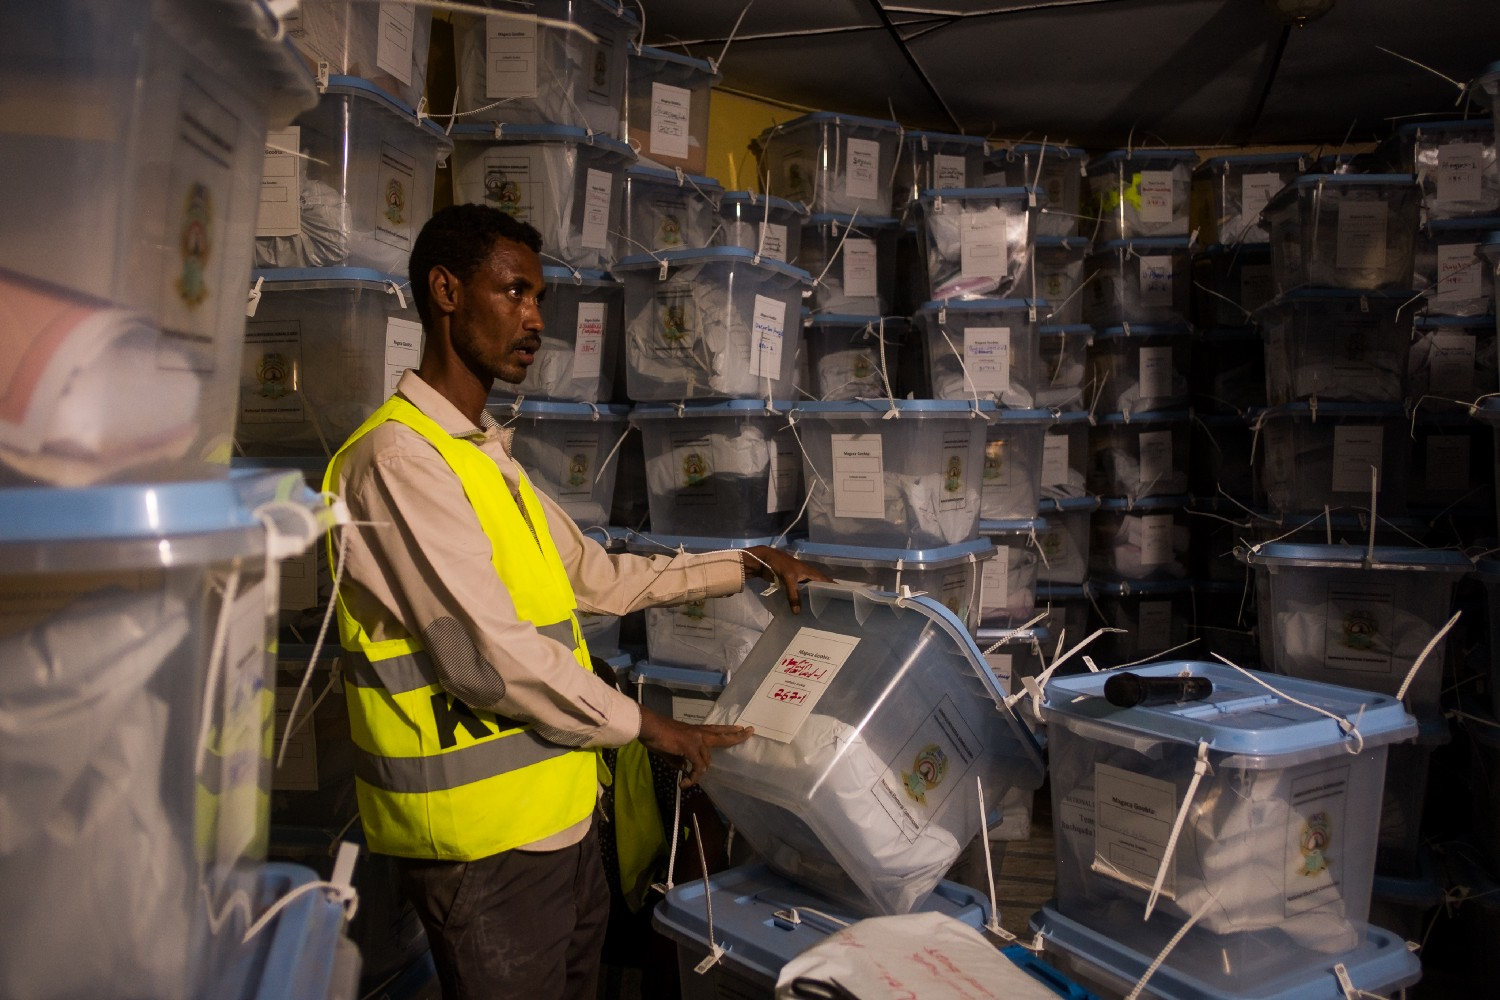 A man in a yellow vest looks at a plastic bin in a warehouse